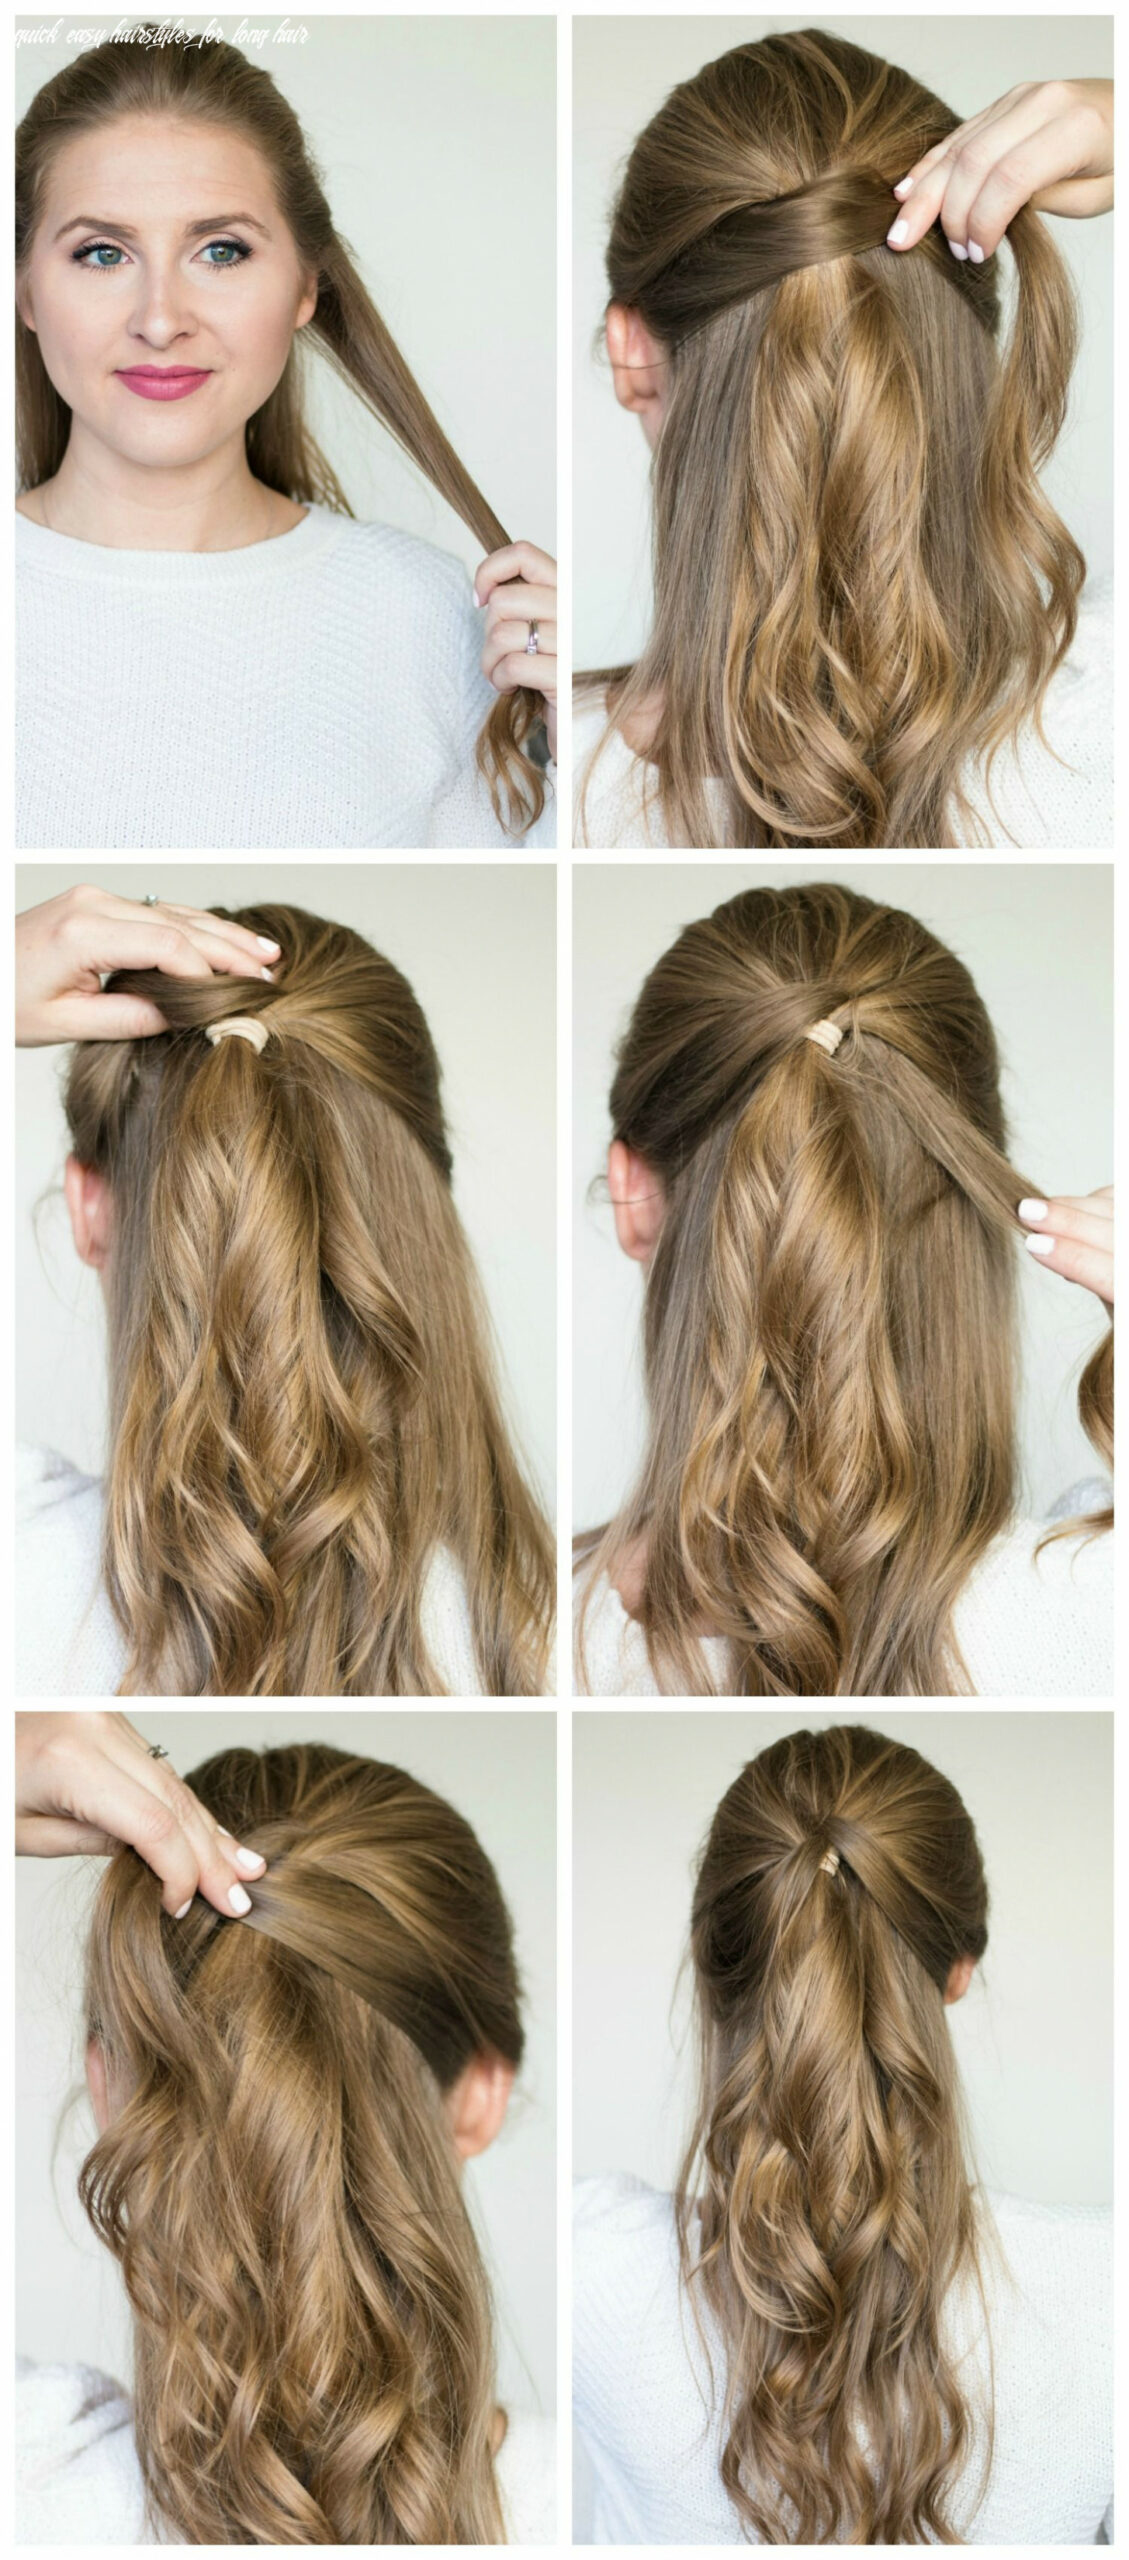 12 quick and easy hair styles step by step tutorials | party